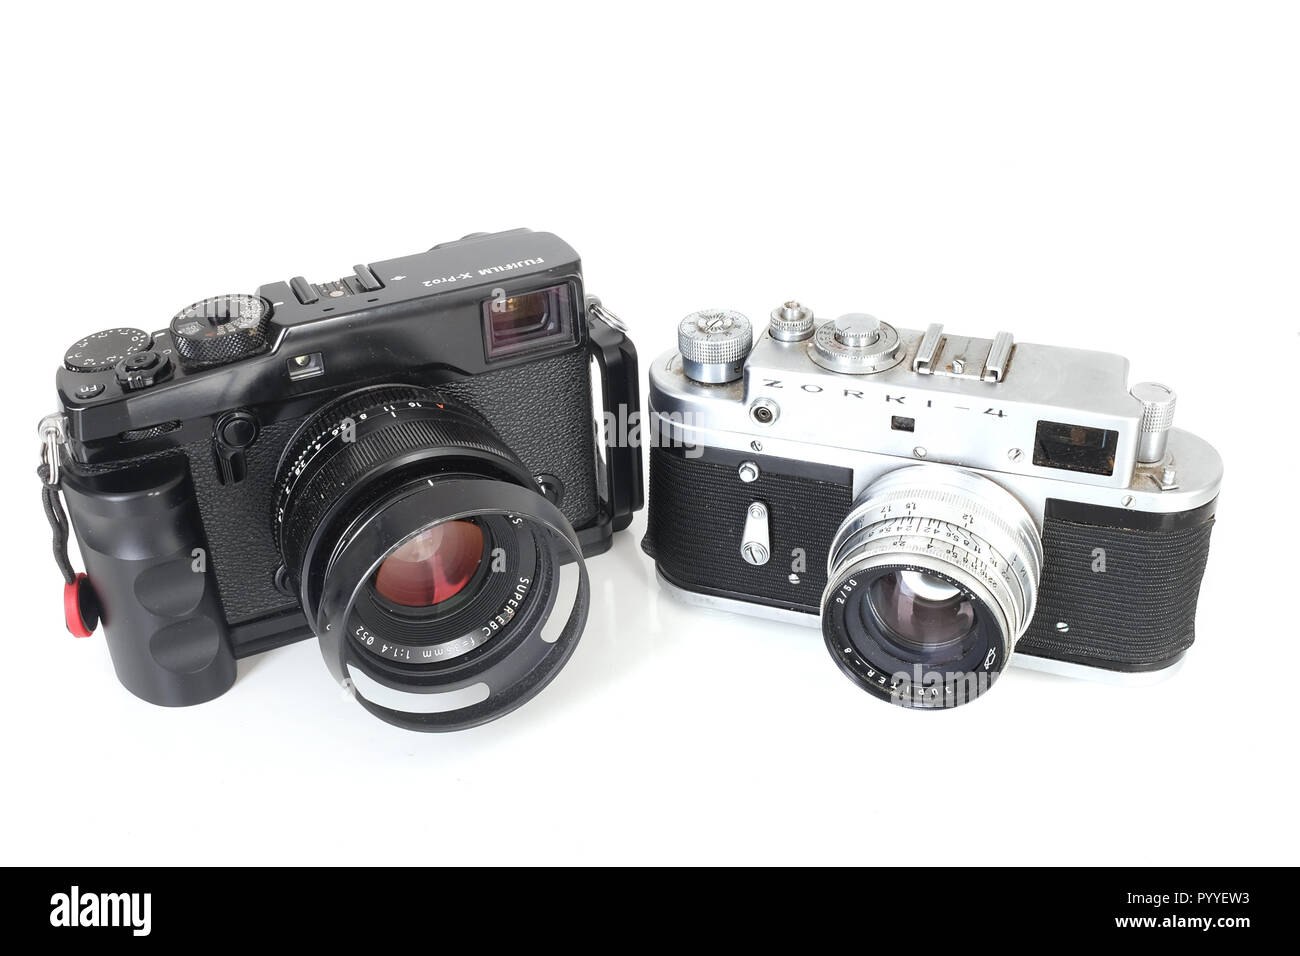 October 2018 - Old and new, A Russian Zorki 35mm range finder camera together with a modern Fujifilm X-Pro2 camera. - Stock Image